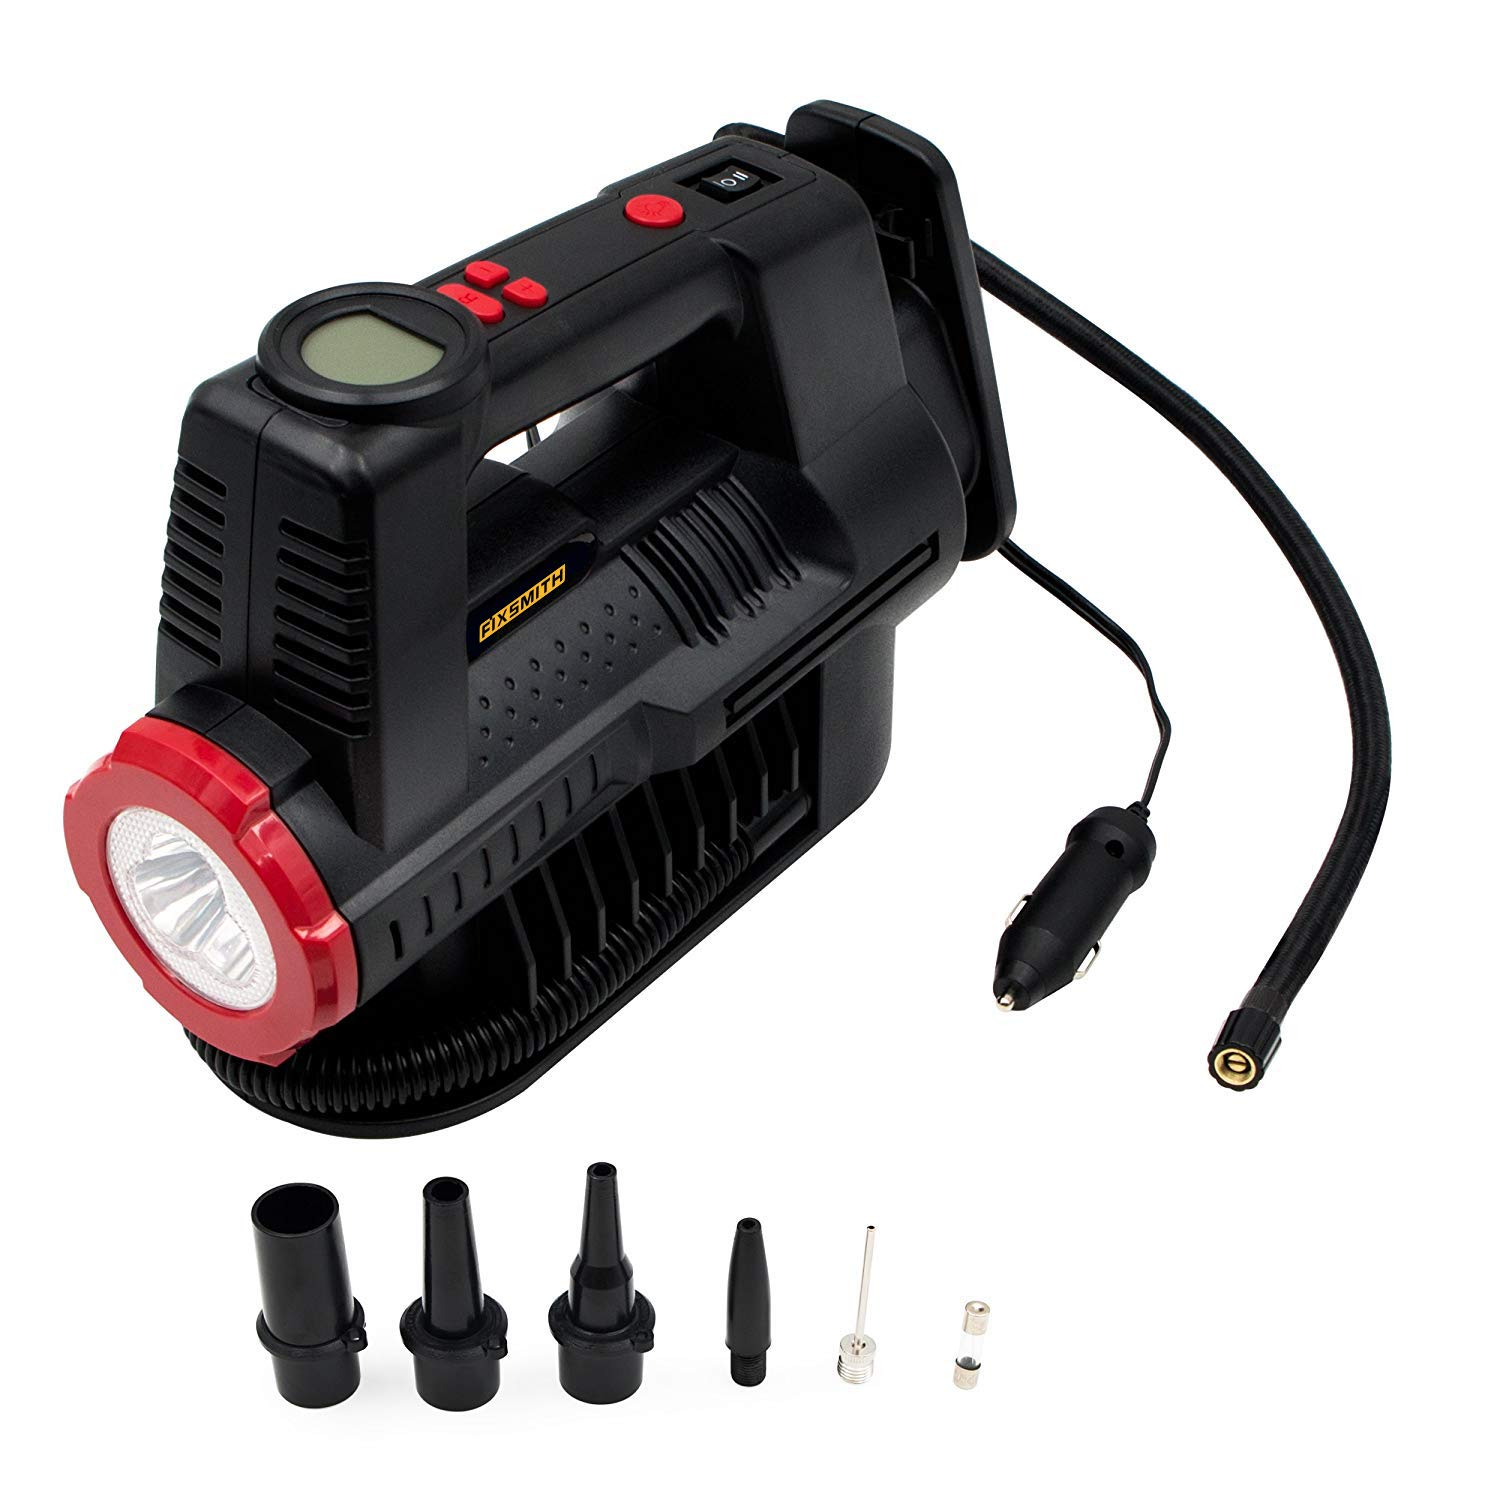 Fixsmith 12v Air Compressor - Digital Gauge 150 PSI, 12 V DC Portable Car Tire Inflator, LED Torch, Auto Shut-Off, 5 High air Flow Adaptors, for Car, Motorbike, Bicycle,Sports Ball,air Bed AT2227B. Automan Pro